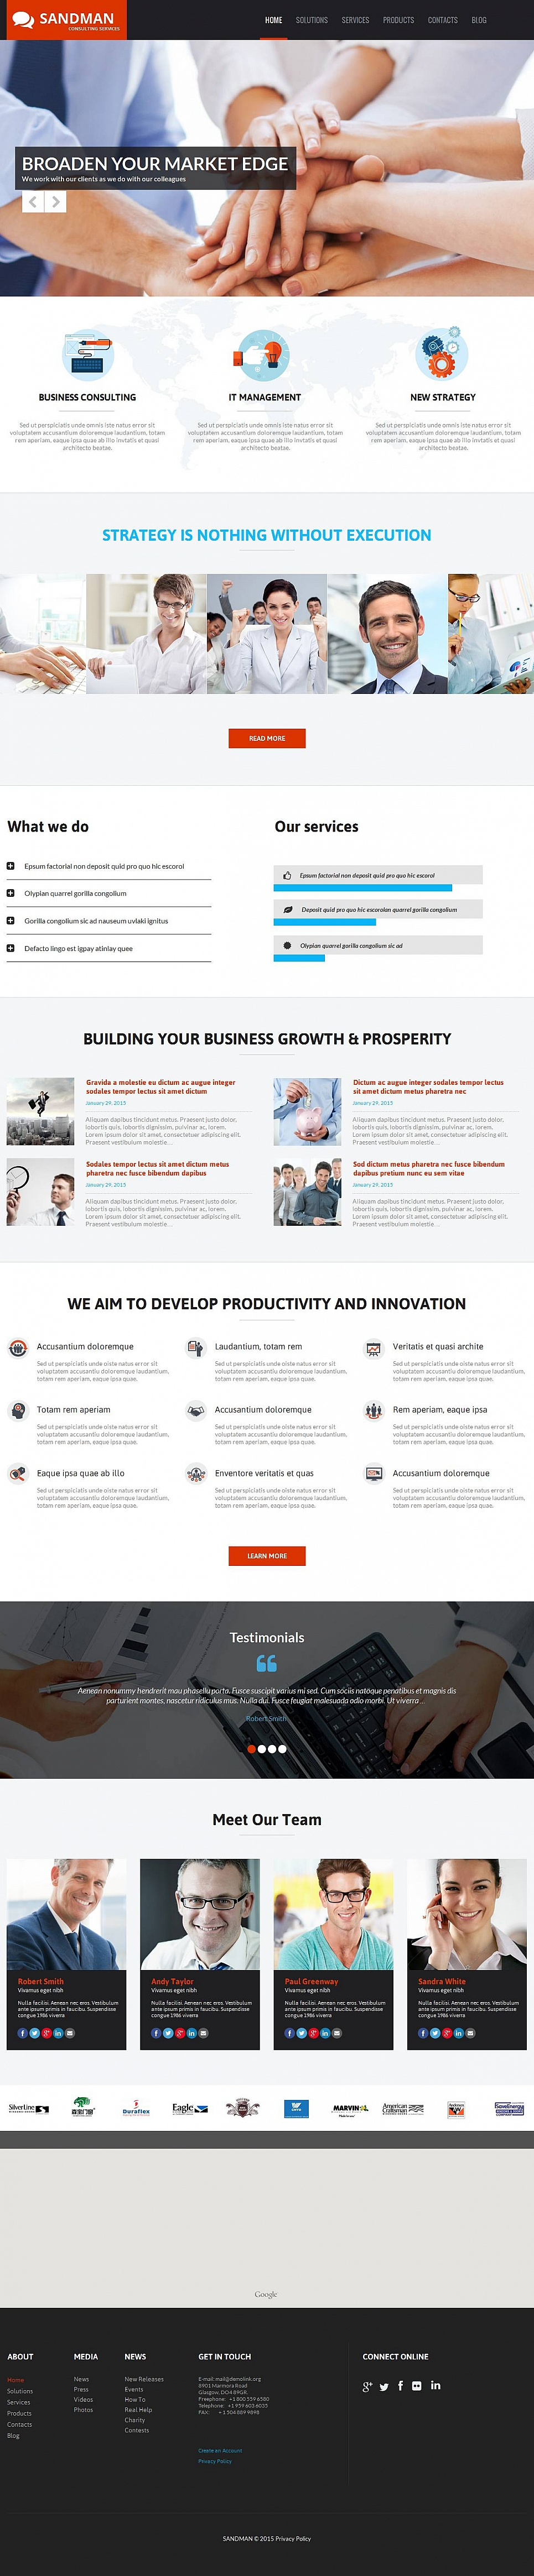 Consulting Services Website Design - image